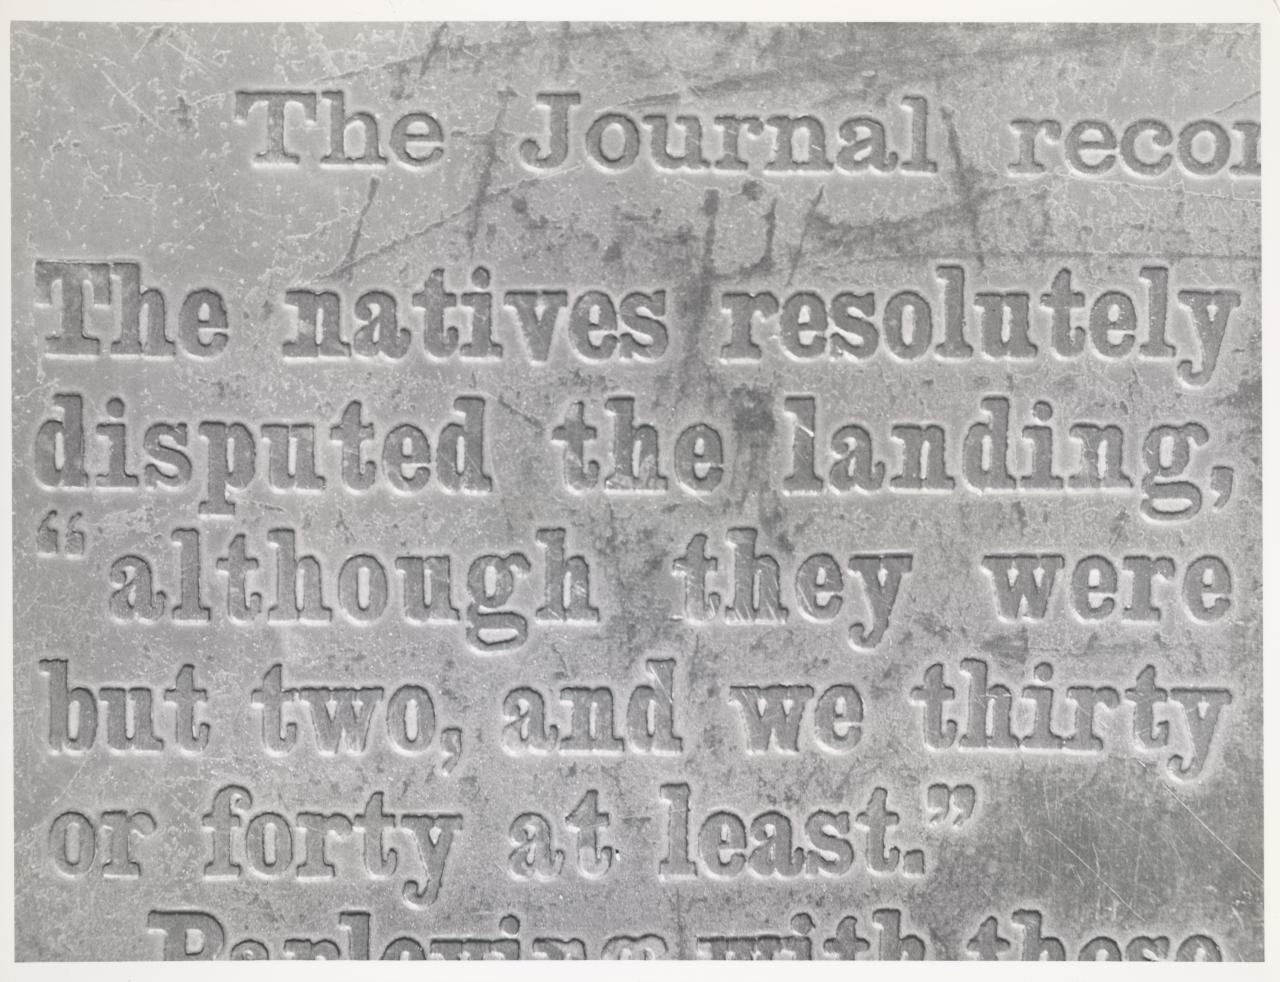 Extract from Captain Cook's journal, stone plaque